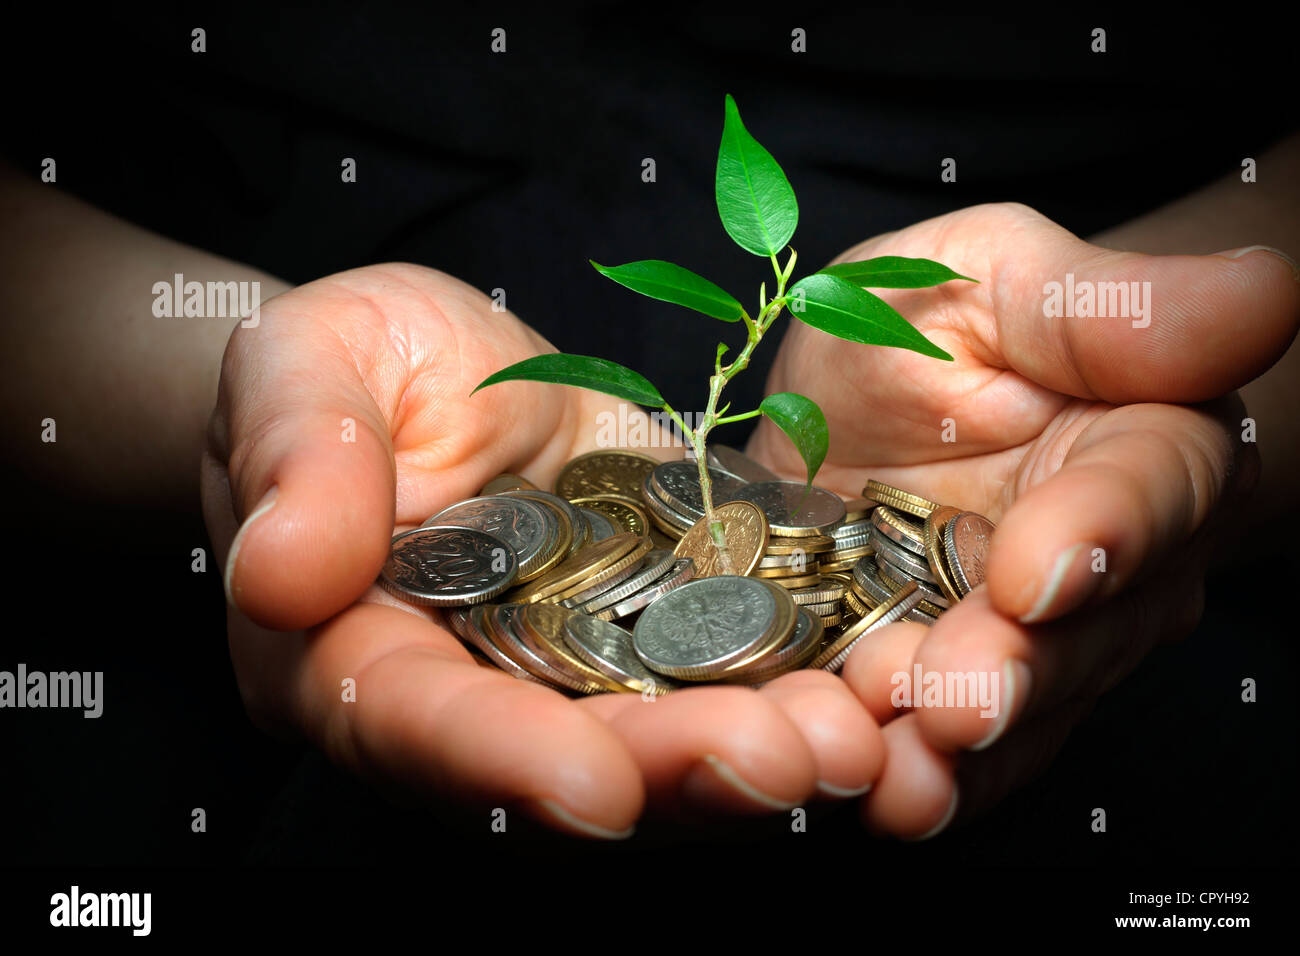 Businessman holding plant sprouting from a handful of coins - good investment and money concept - Stock Image